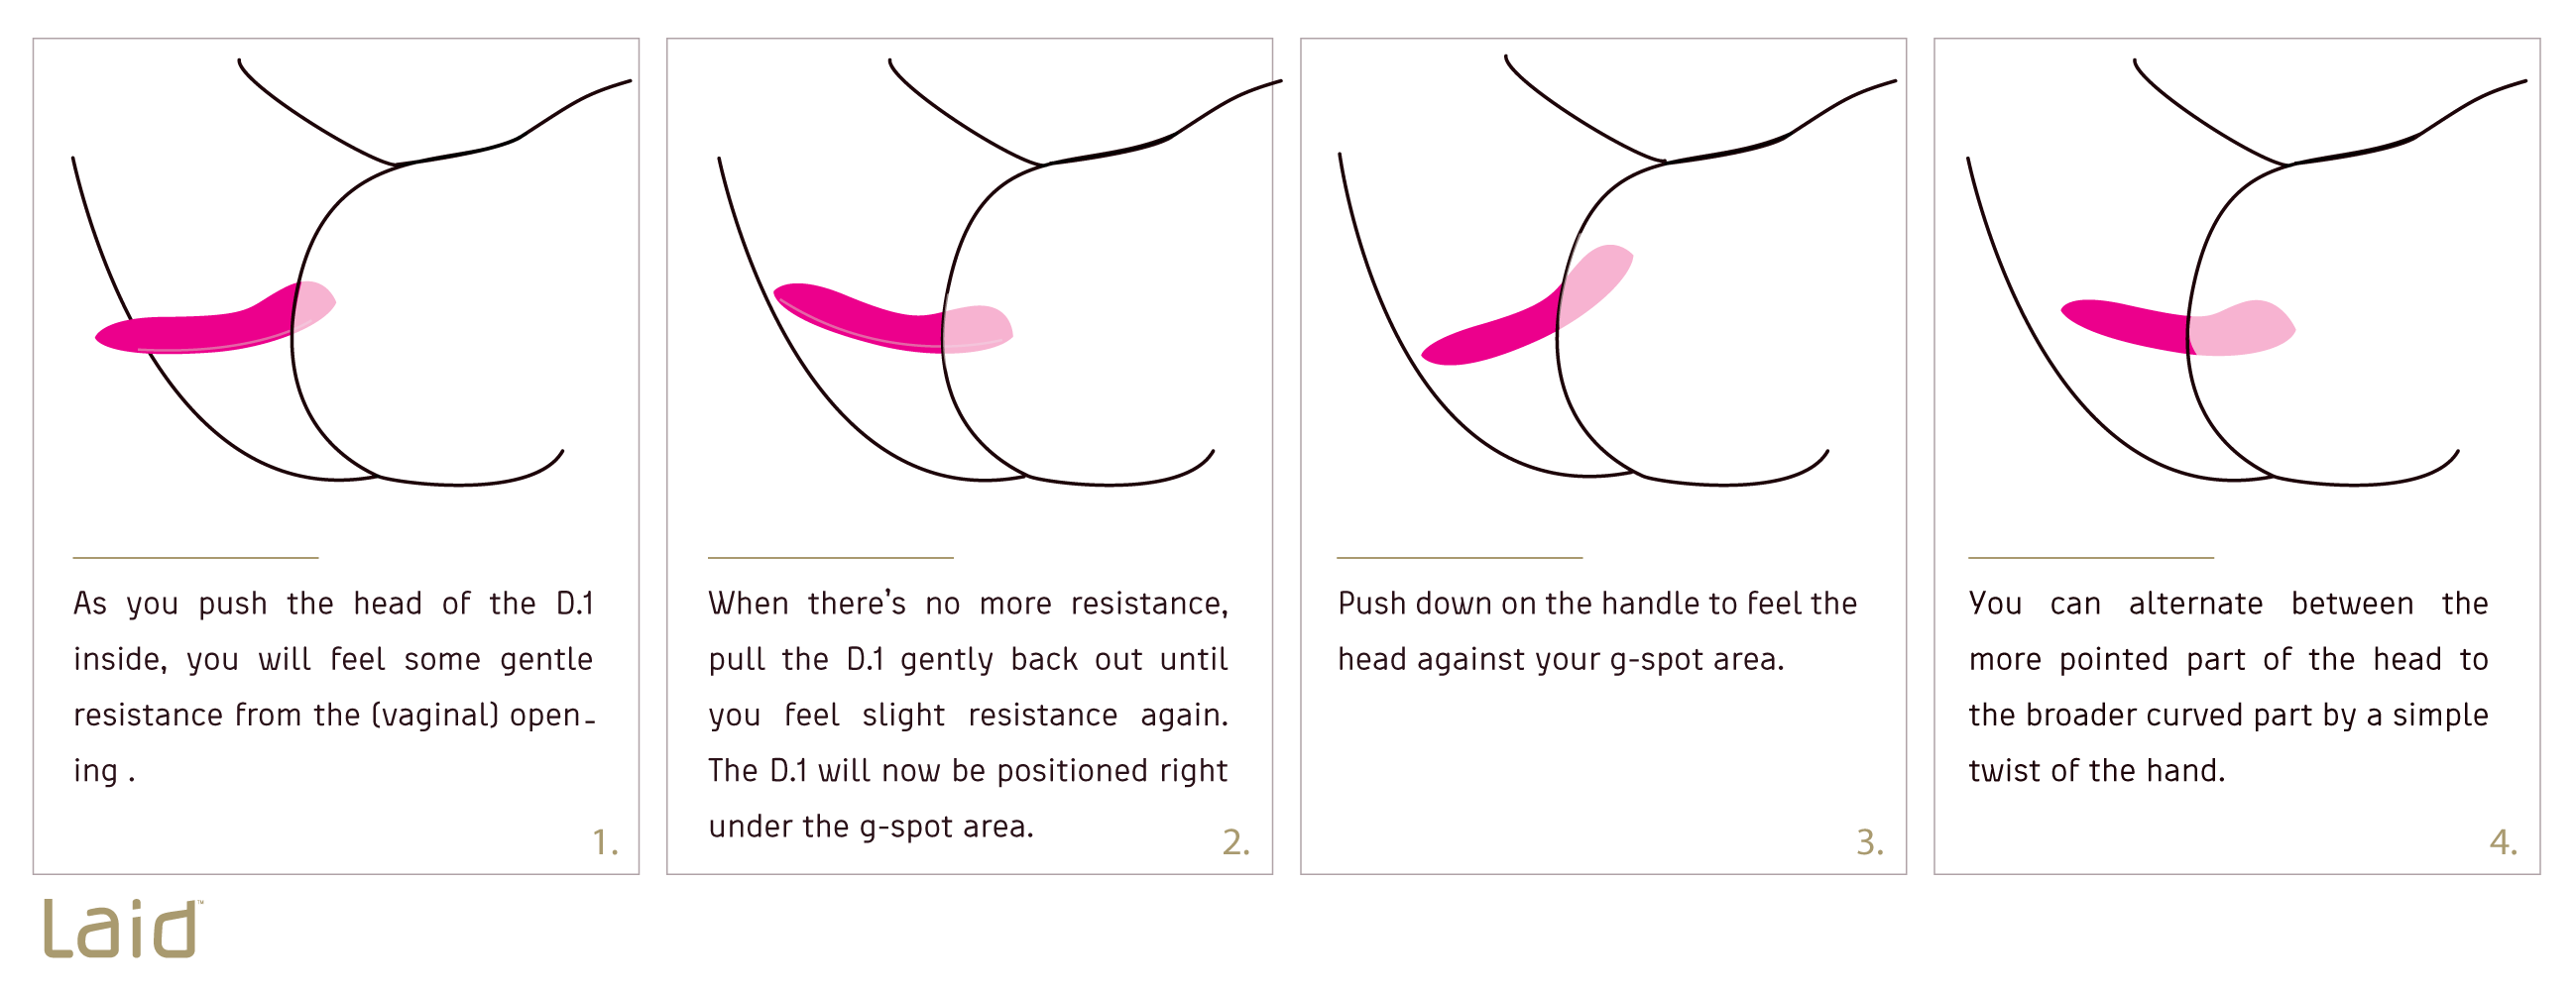 laid-d1-dildo-how-to-use.png